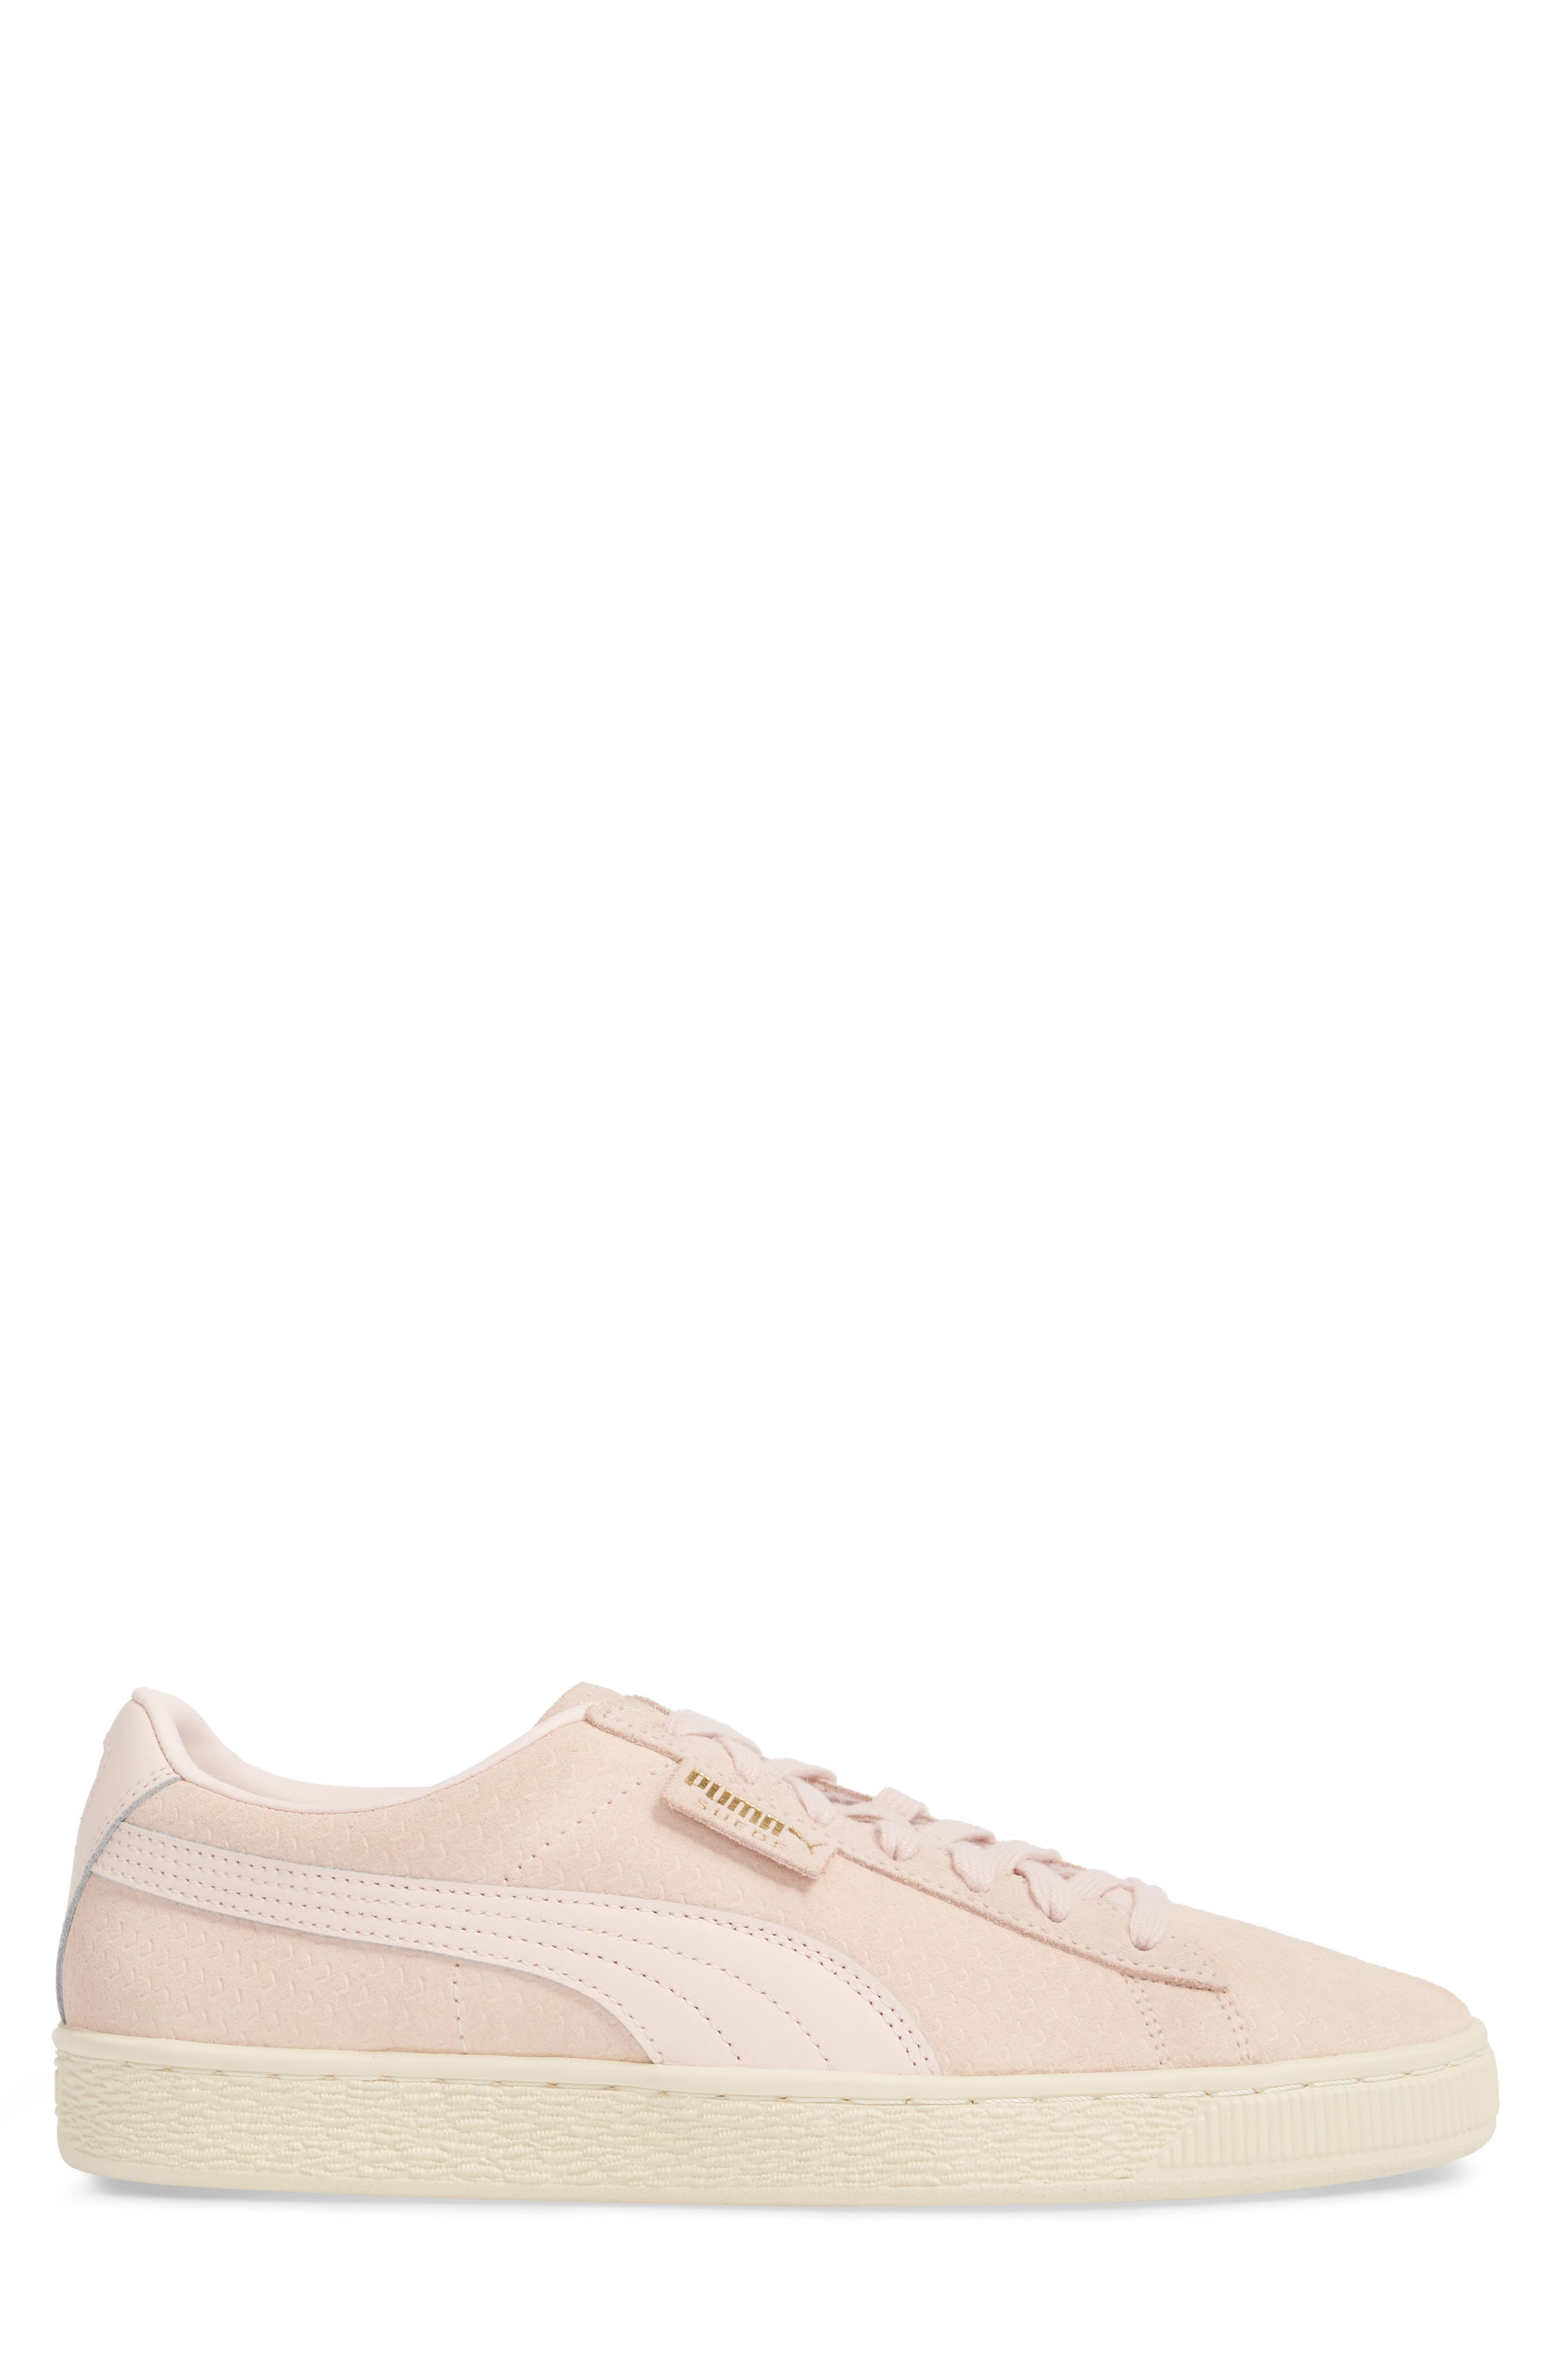 Suede Classic Perforation Sneaker,                             Alternate thumbnail 3, color,                             Pearl/ Whisper White Suede